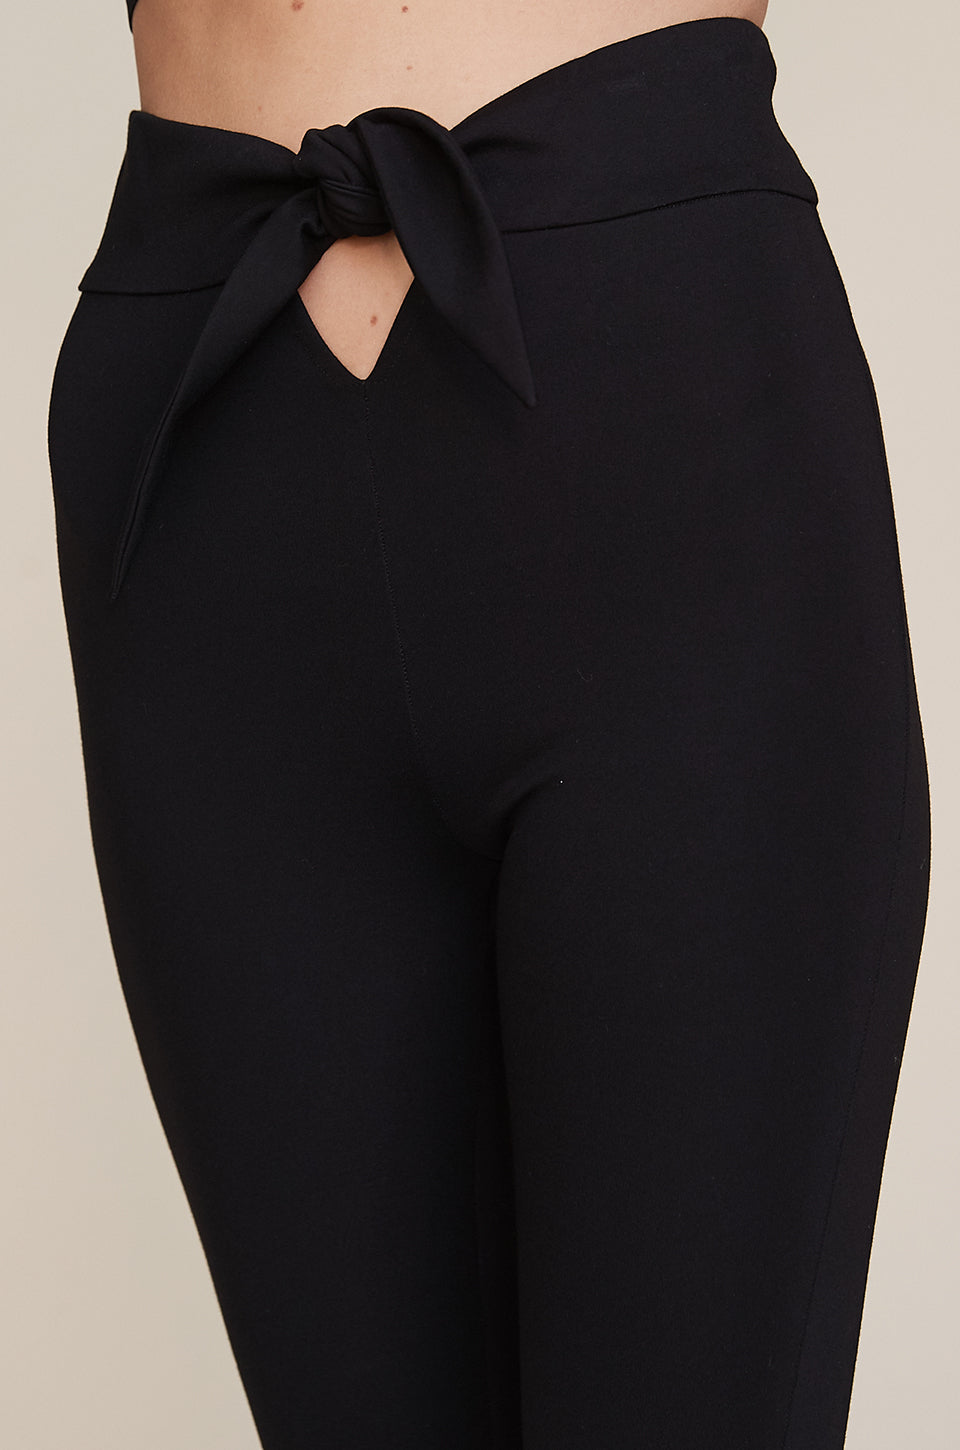 Pant 572 In Black. Pantalon 572 En Noir. - Size M (also In L,s,xl) Lpa - Taille M (également À L, L, Xl) Lpa